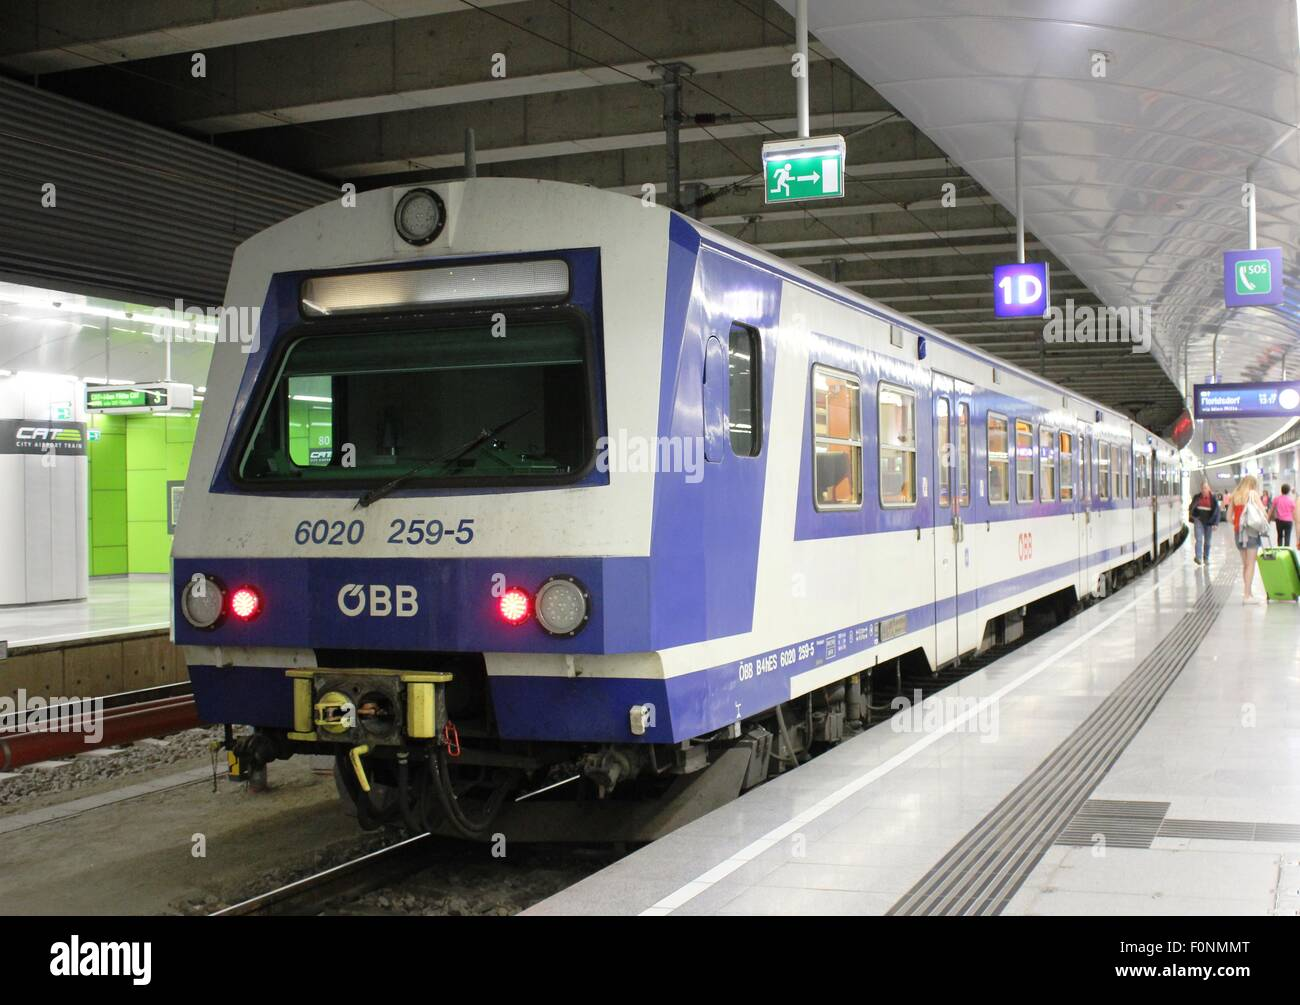 Obb electric multiple unit (emu) train at a platform in Vienna Airport station - Stock Image